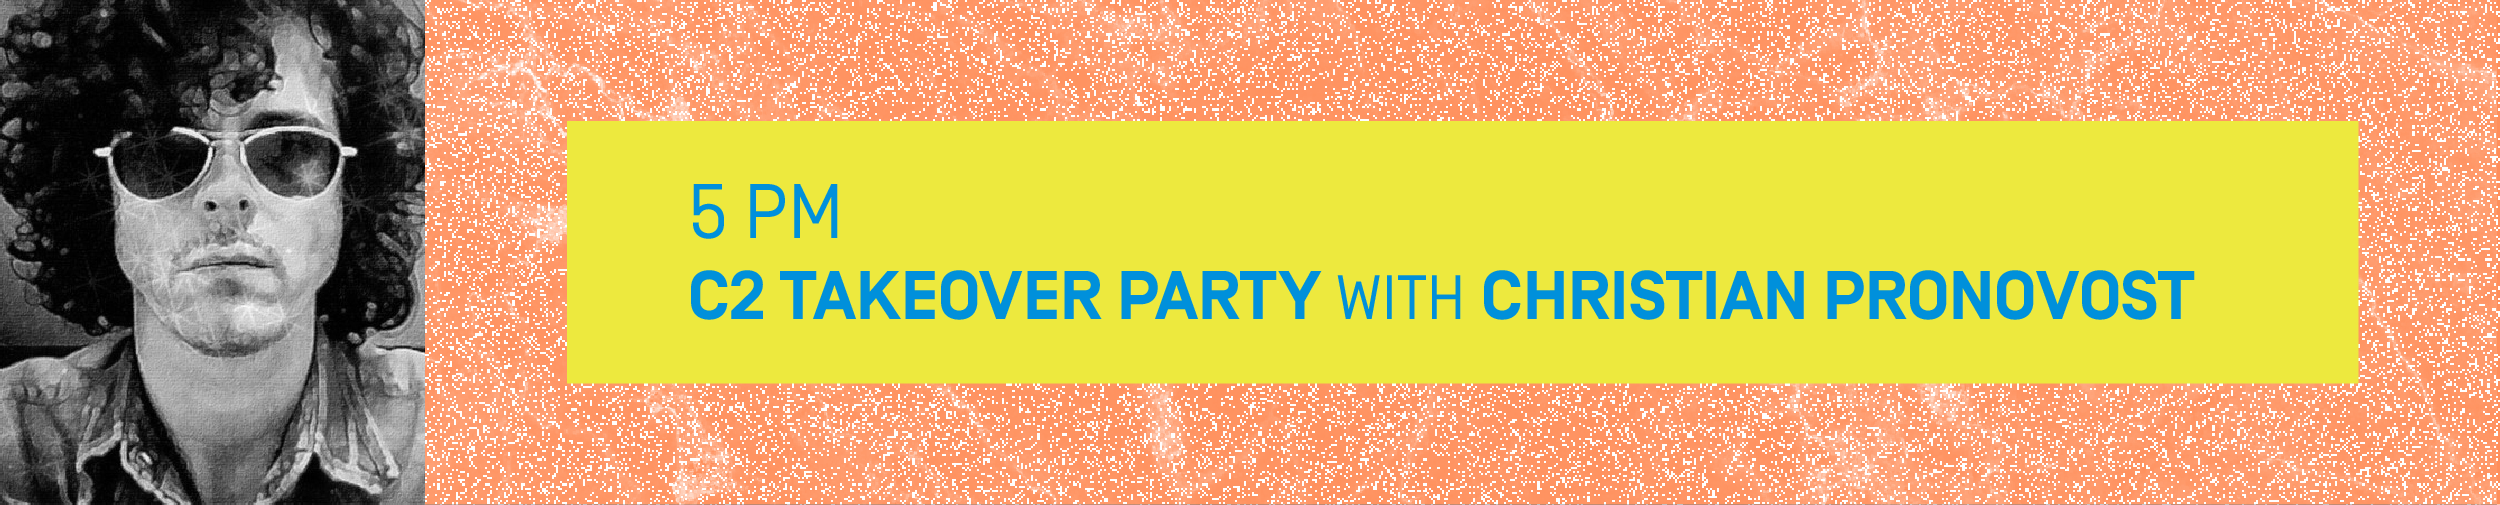 5 PM – C2 TAKEOVER PARTY with CHRISTIAN PRONOVOST